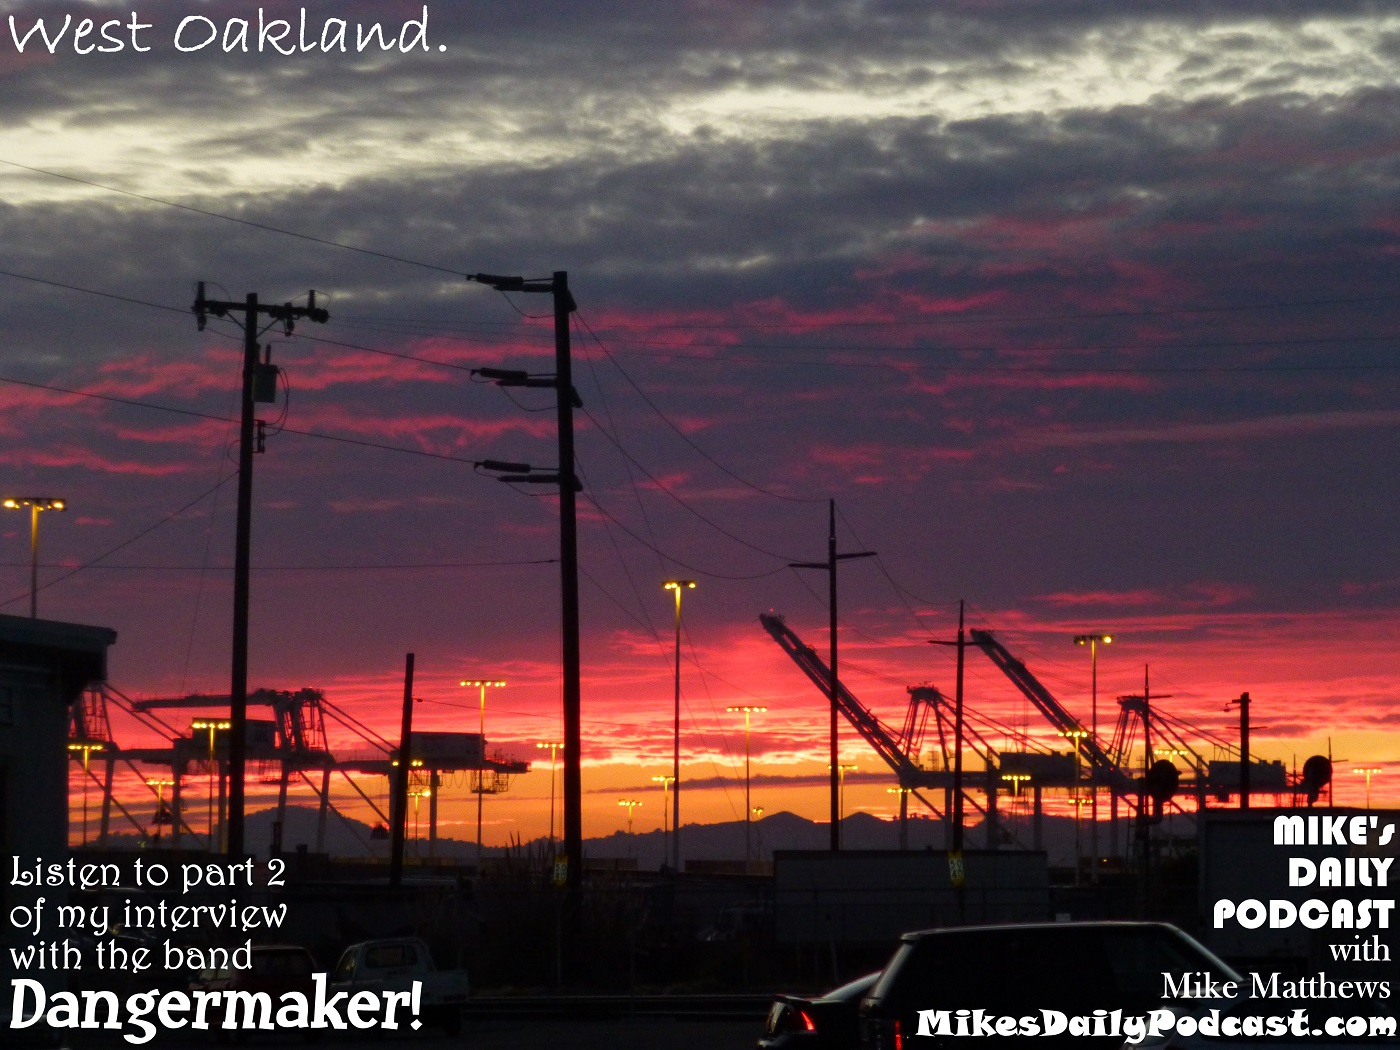 MIKEs DAILY PODCAST 934 West Oakland Sunset